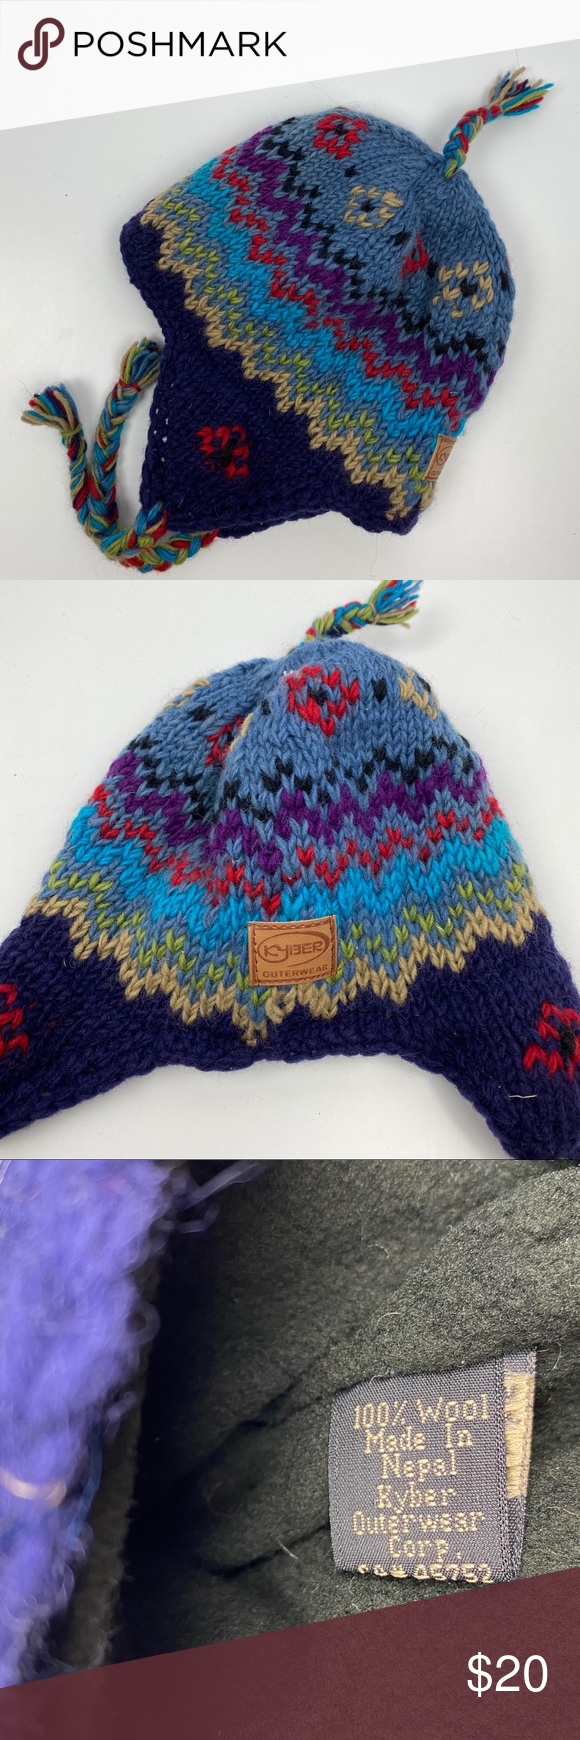 Woven Wool Fleece Lined Winter Hat Made In Nepal Winter Hats Hat Making Clothes Design [ 1740 x 580 Pixel ]